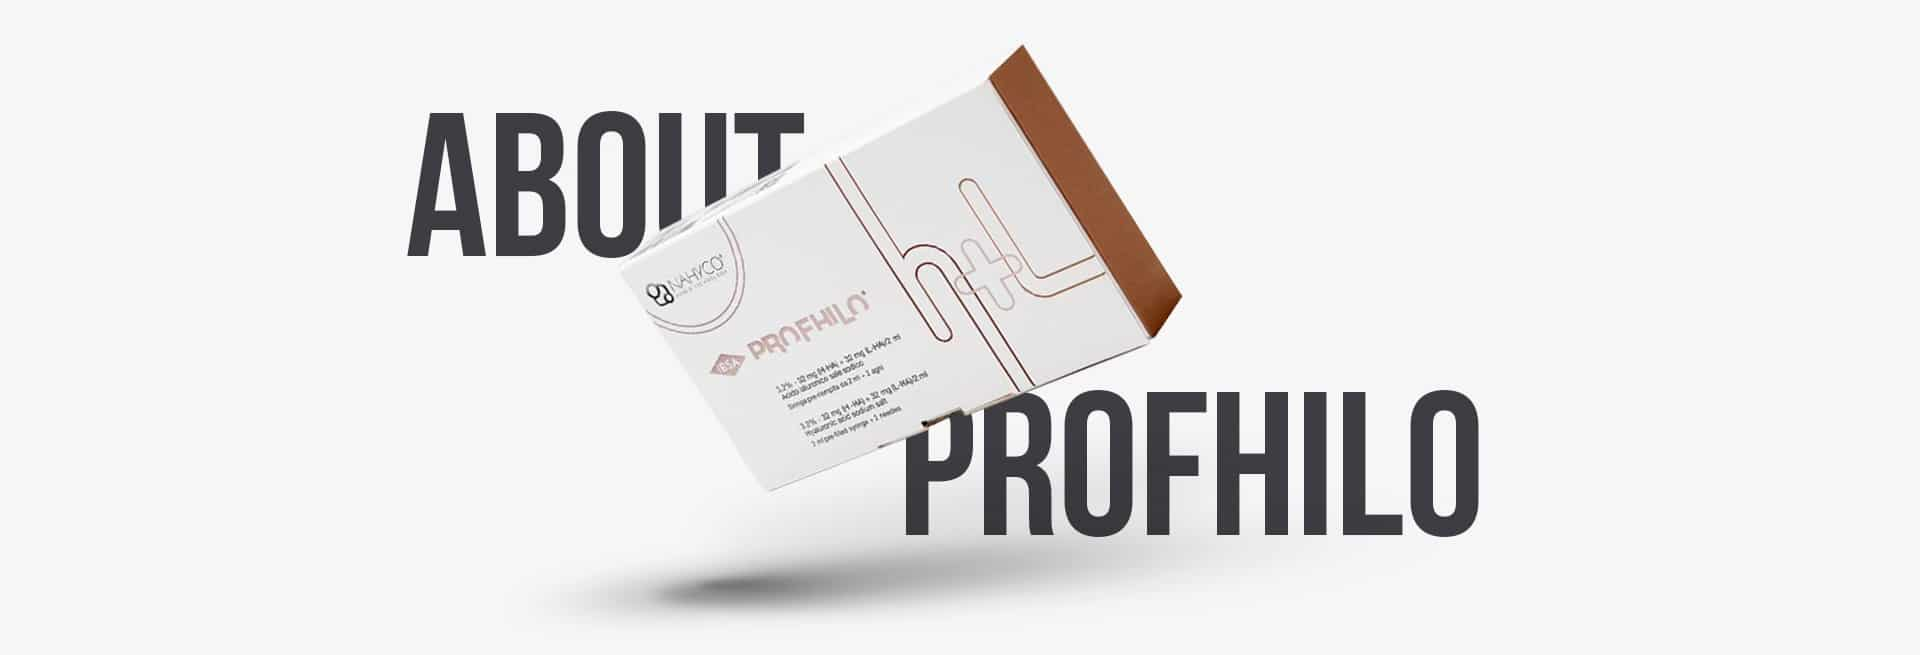 About Profhilo